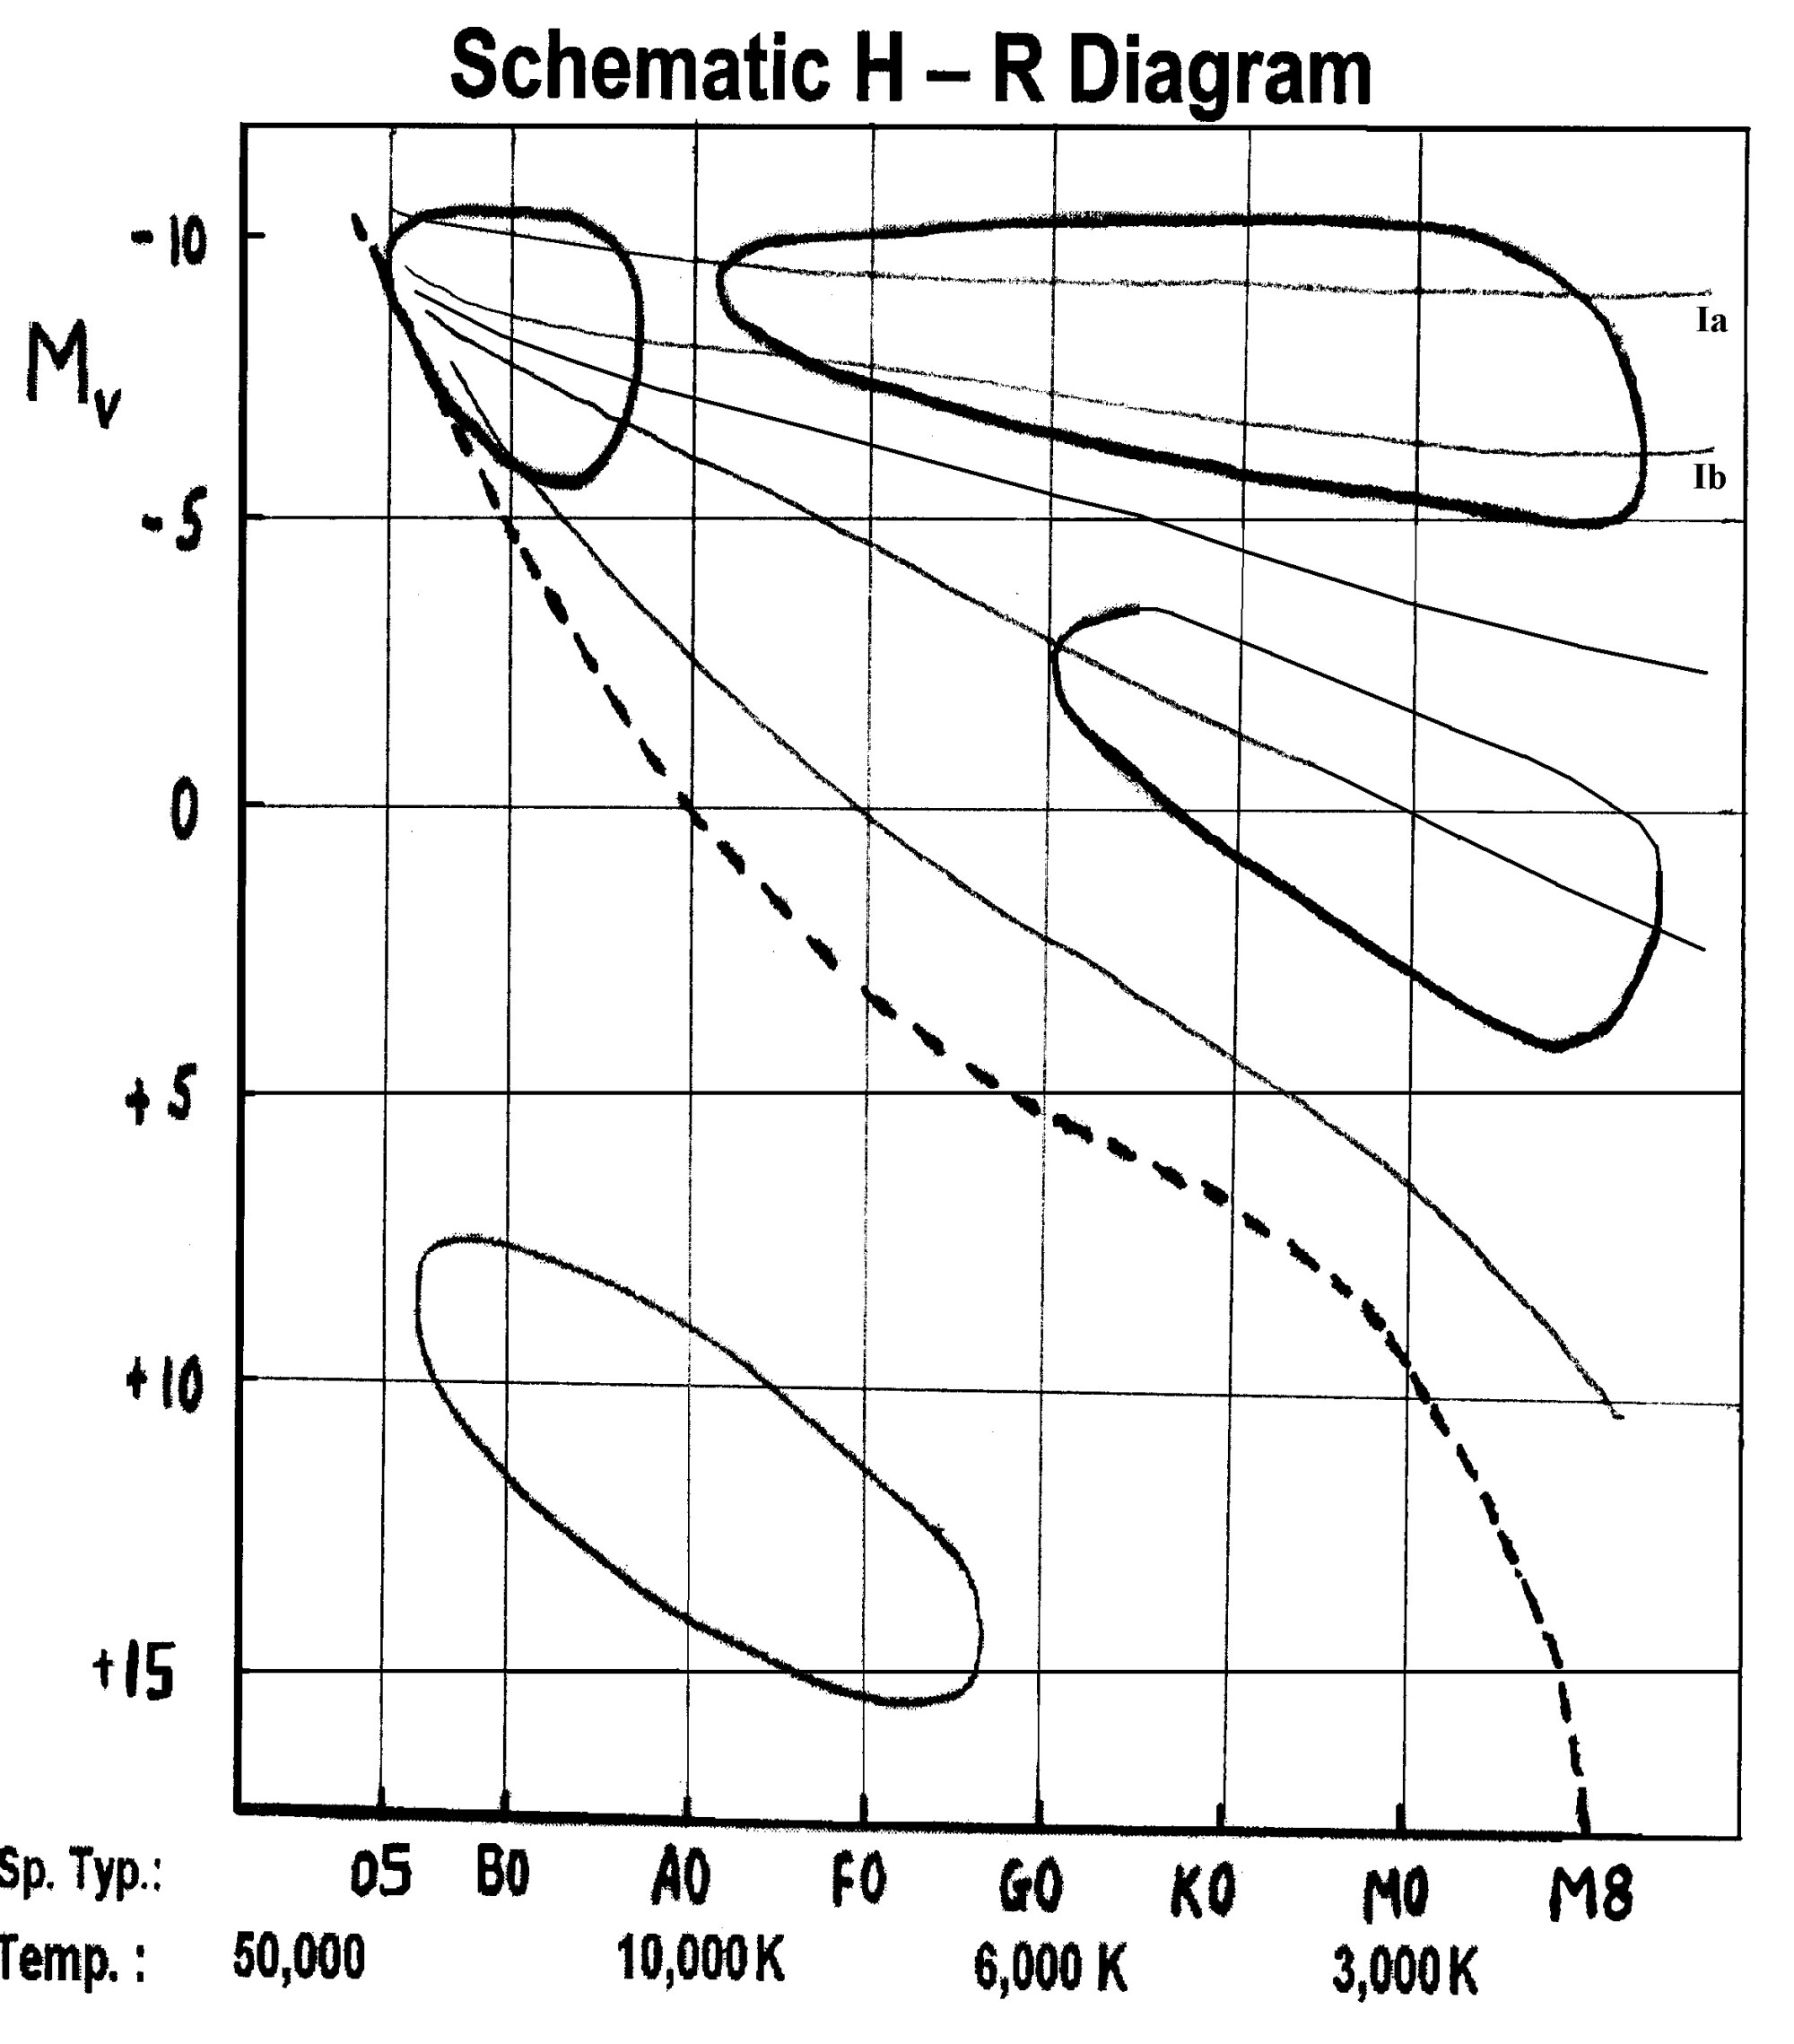 hight resolution of  18 7 h r diagram